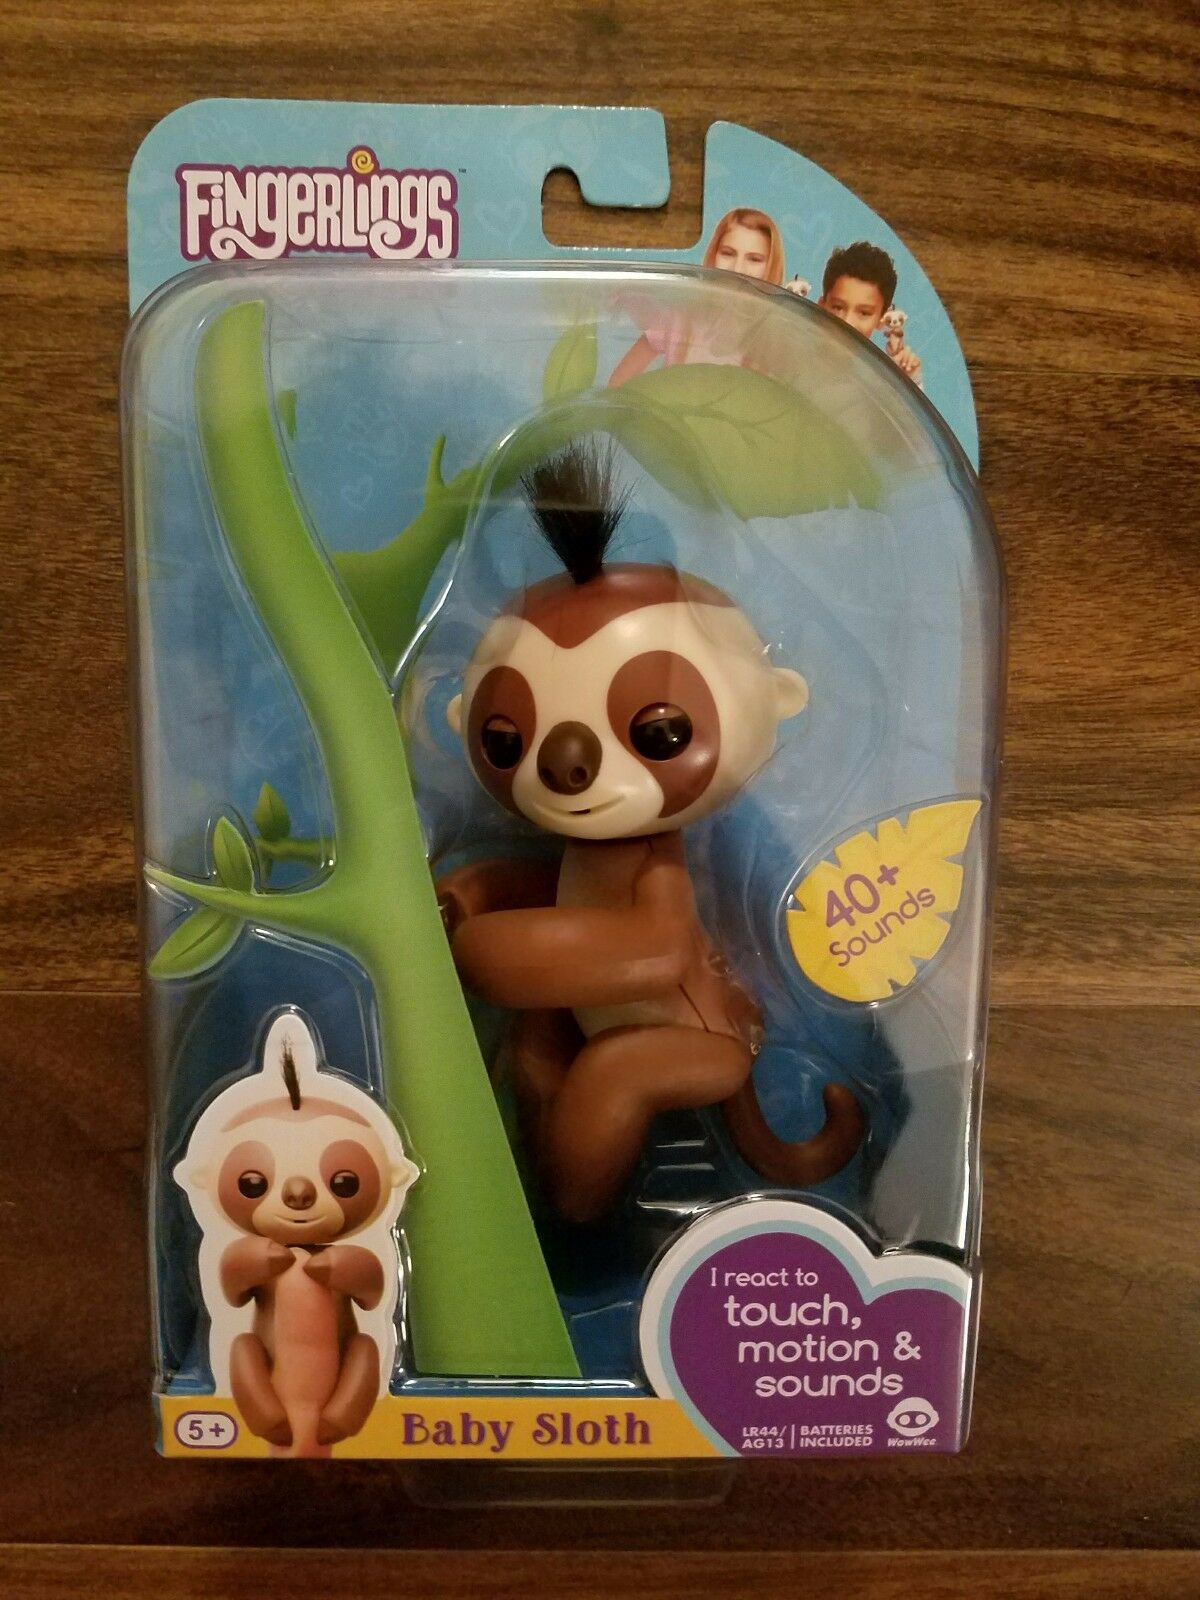 AUTHENTIC Fingerling Sloth Brown Kingsley Walmart Exclusive WowWee Fingerlings 1 Of 3Only 3 Available See More